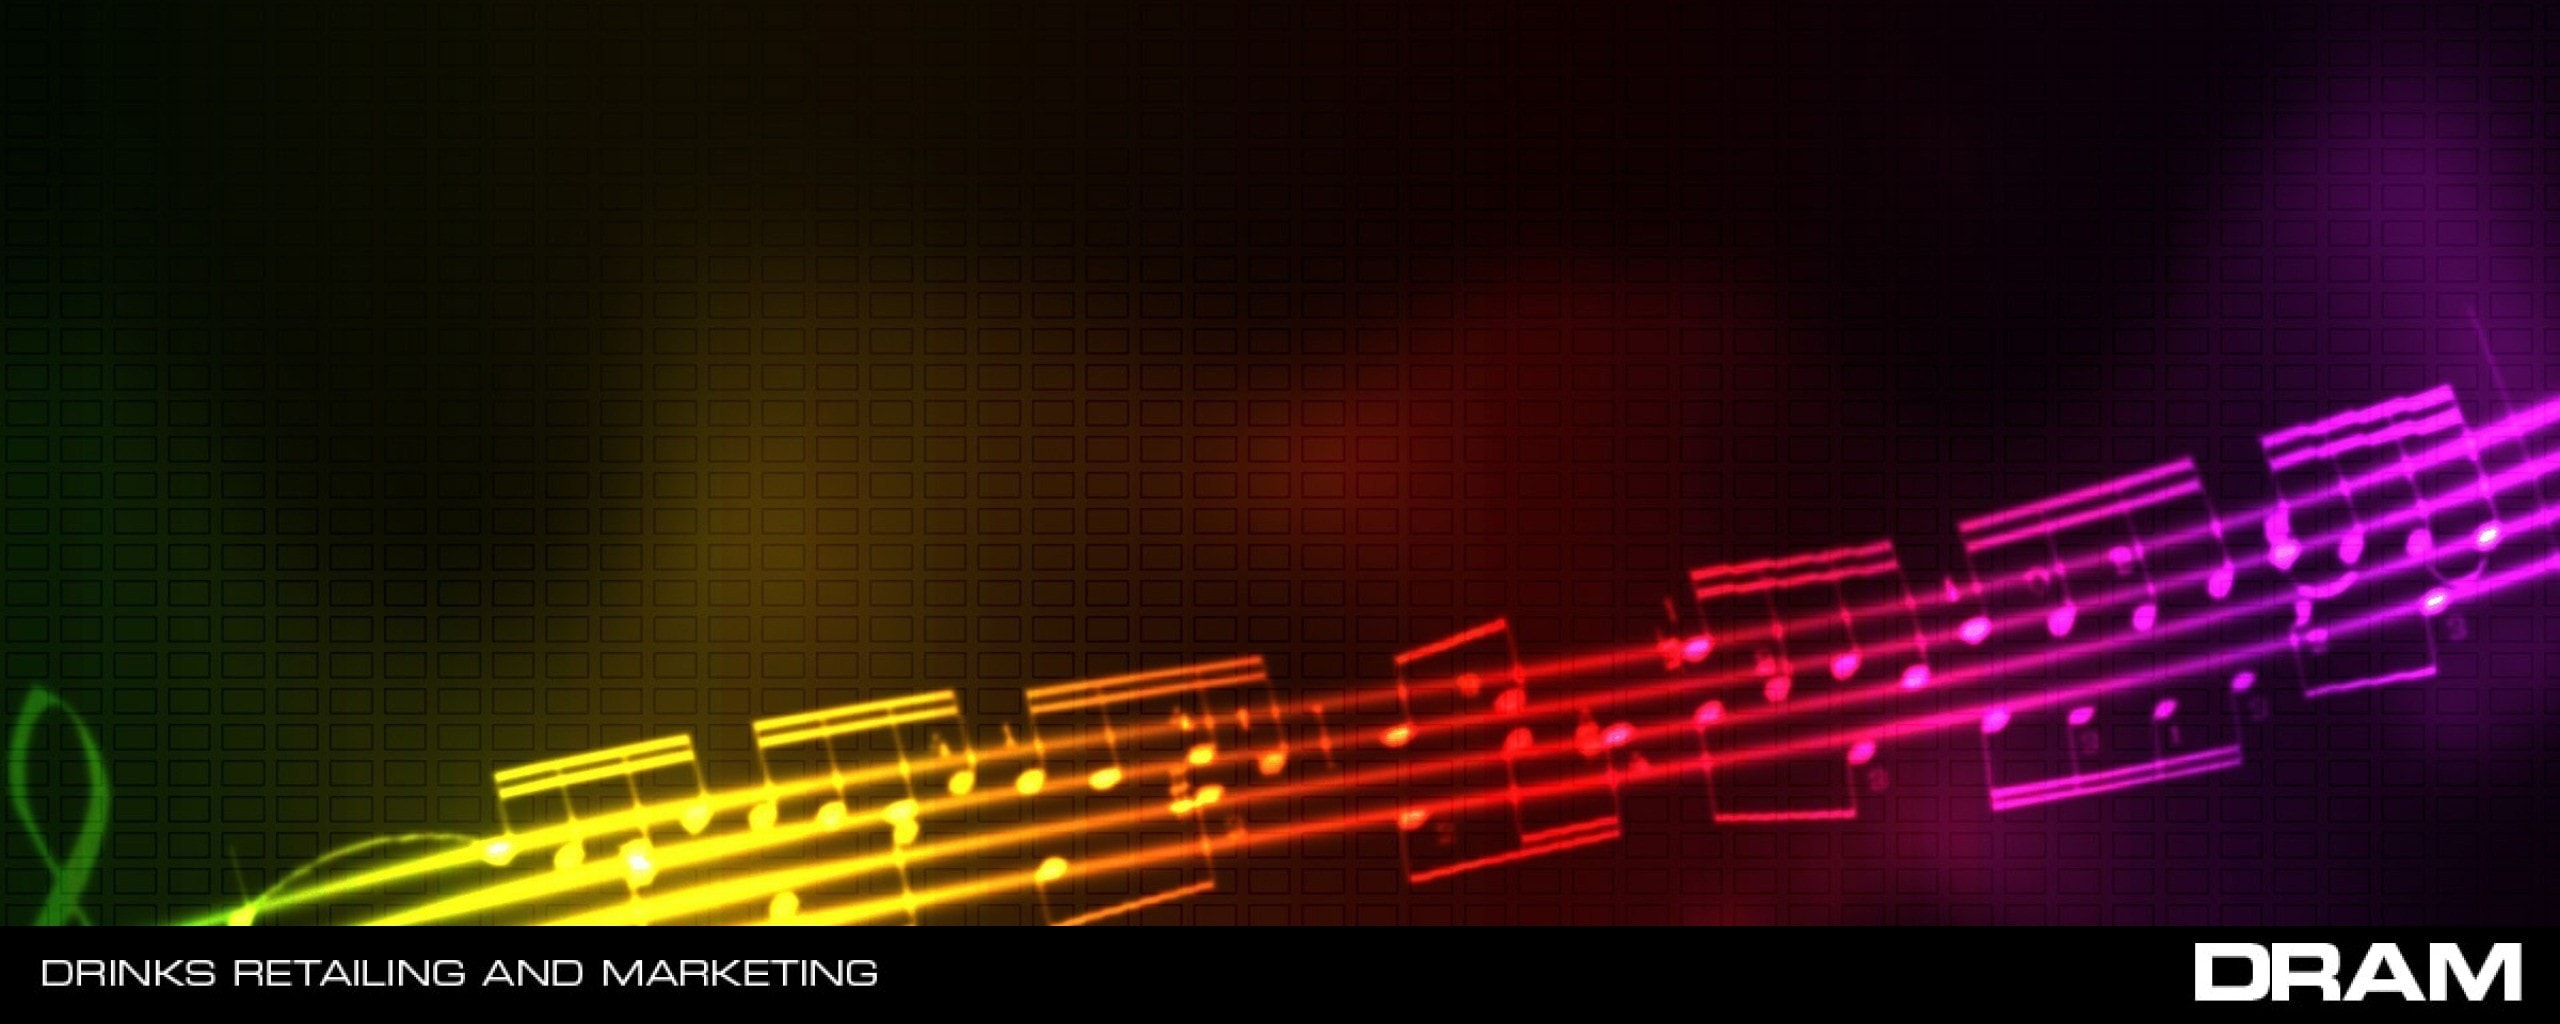 Abstract-Music-Multicolor-Black-Background-Colors-1024x2560-1